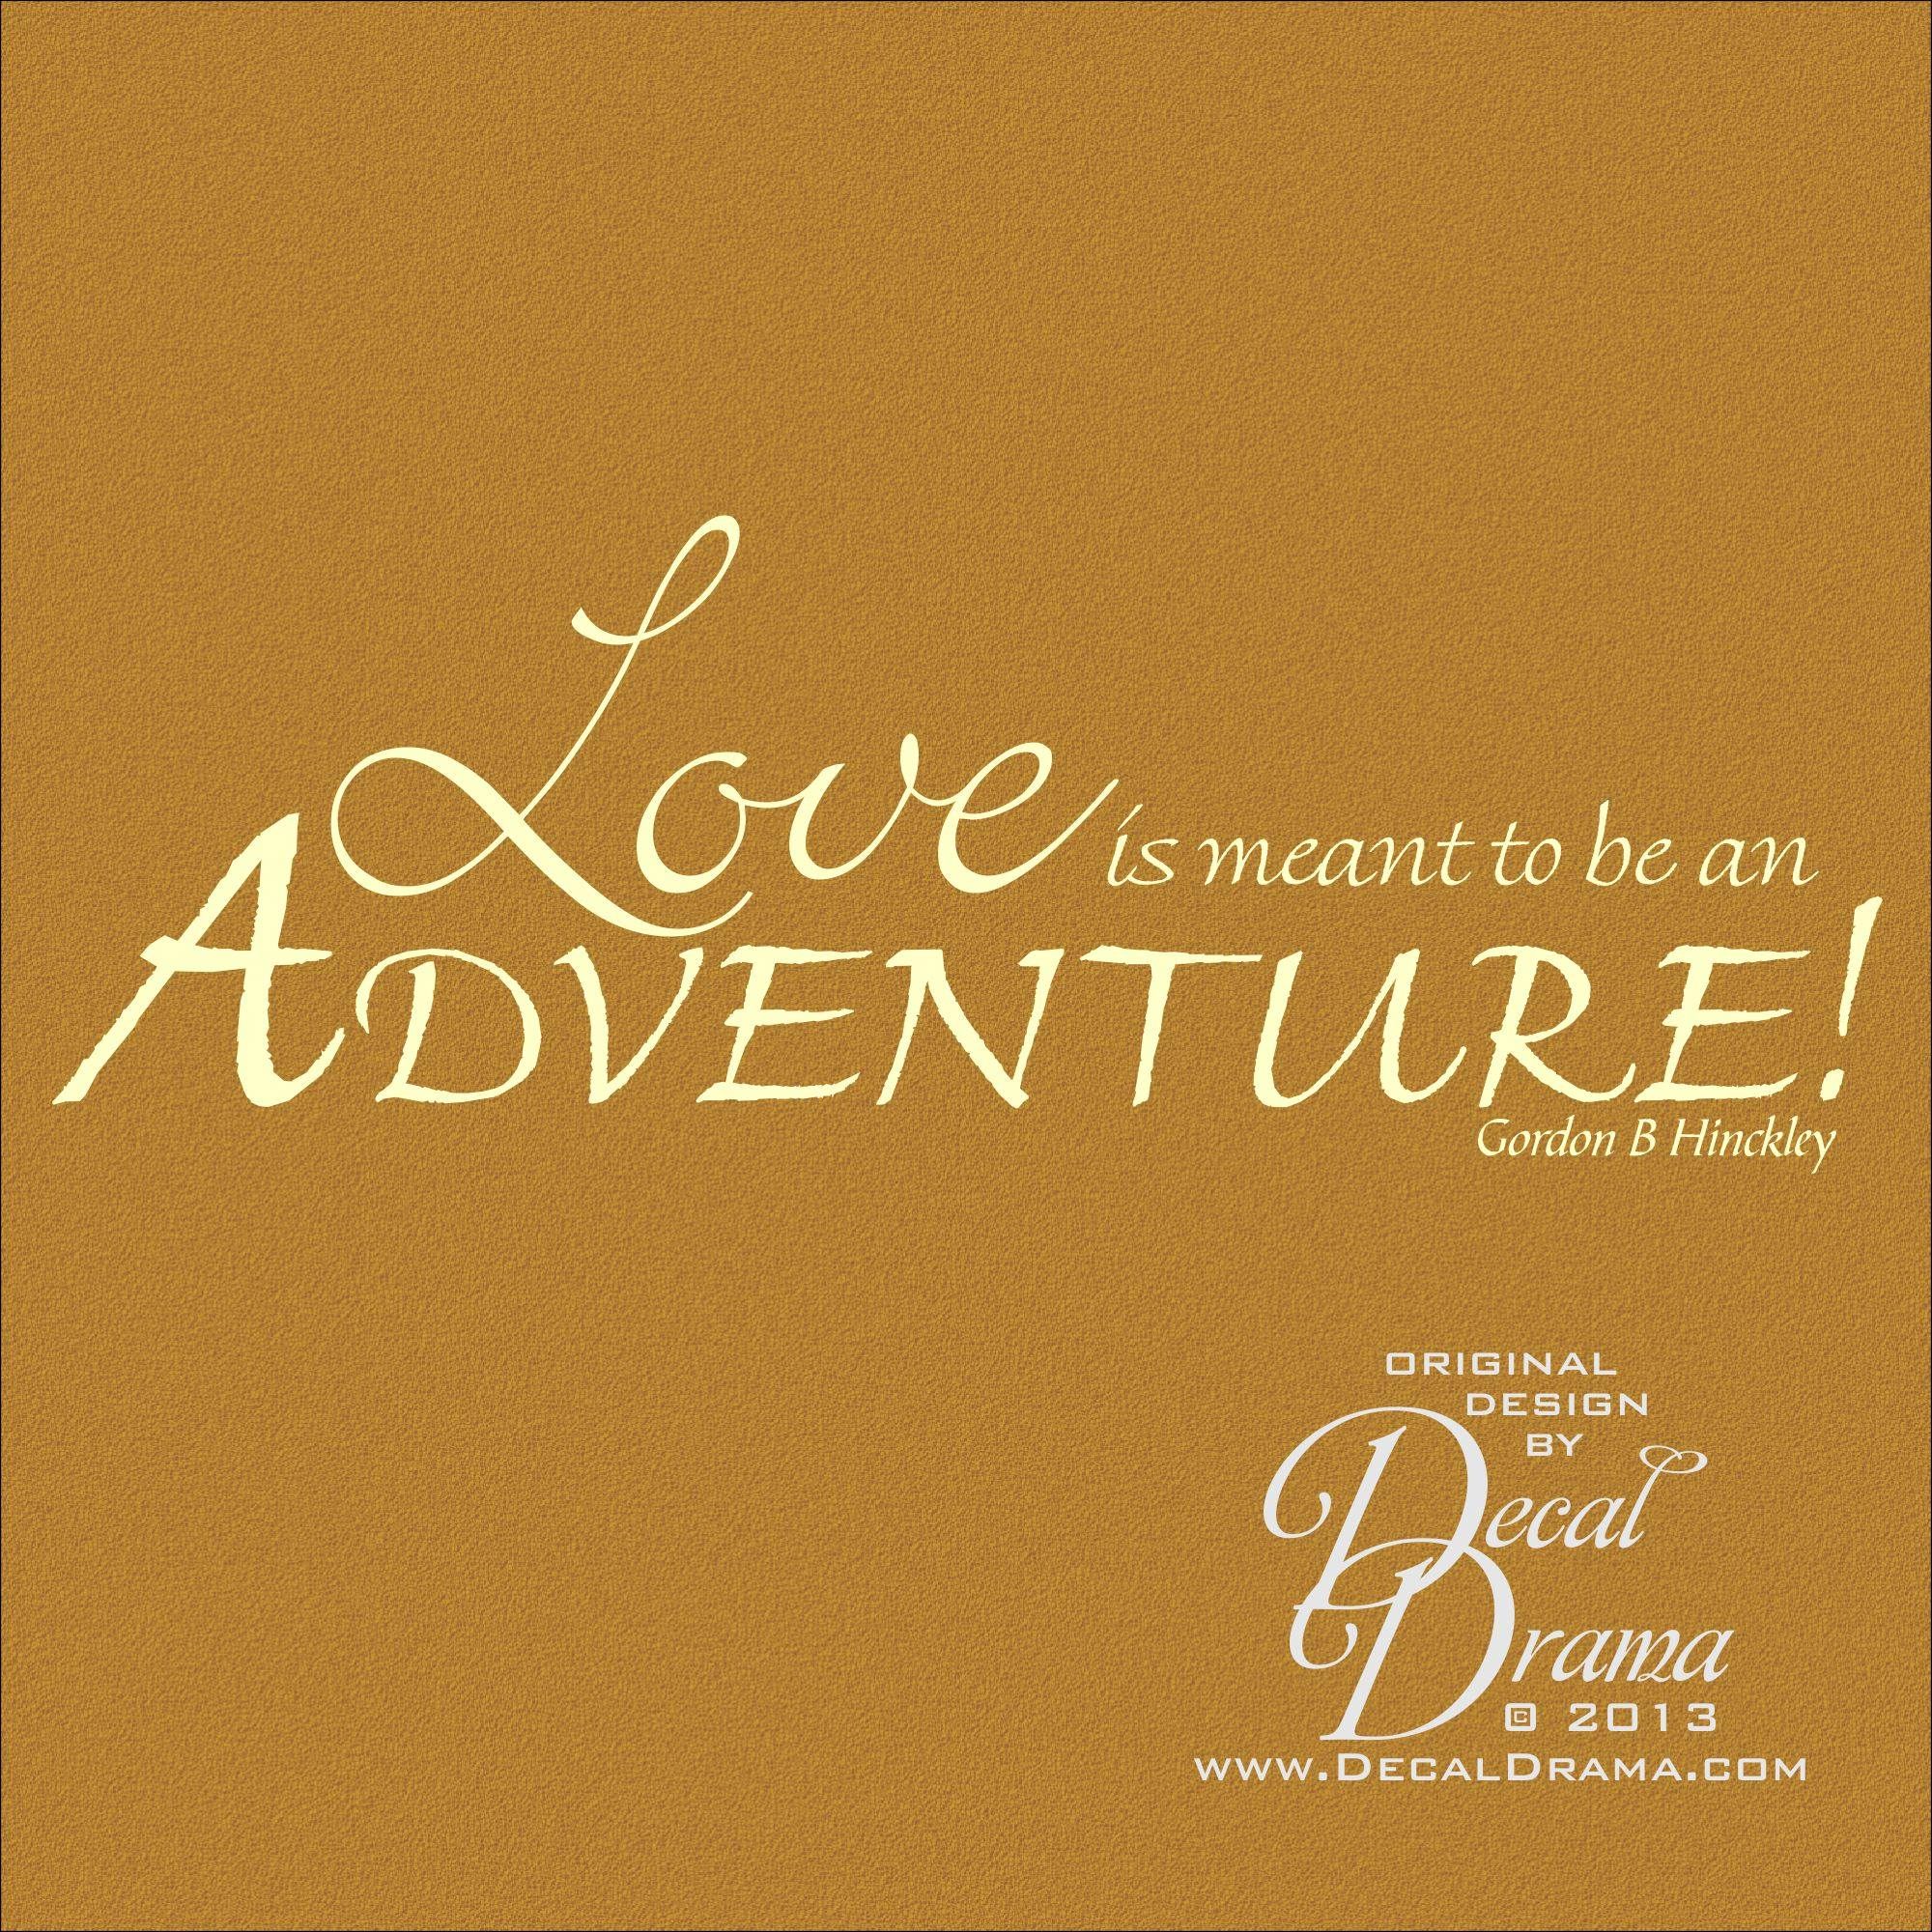 Gordon B Hinckley Quotes About Love : Love is Meant to be an ADVENTURE, Gordon B. Hinckley quote, Vinyl Wall ...